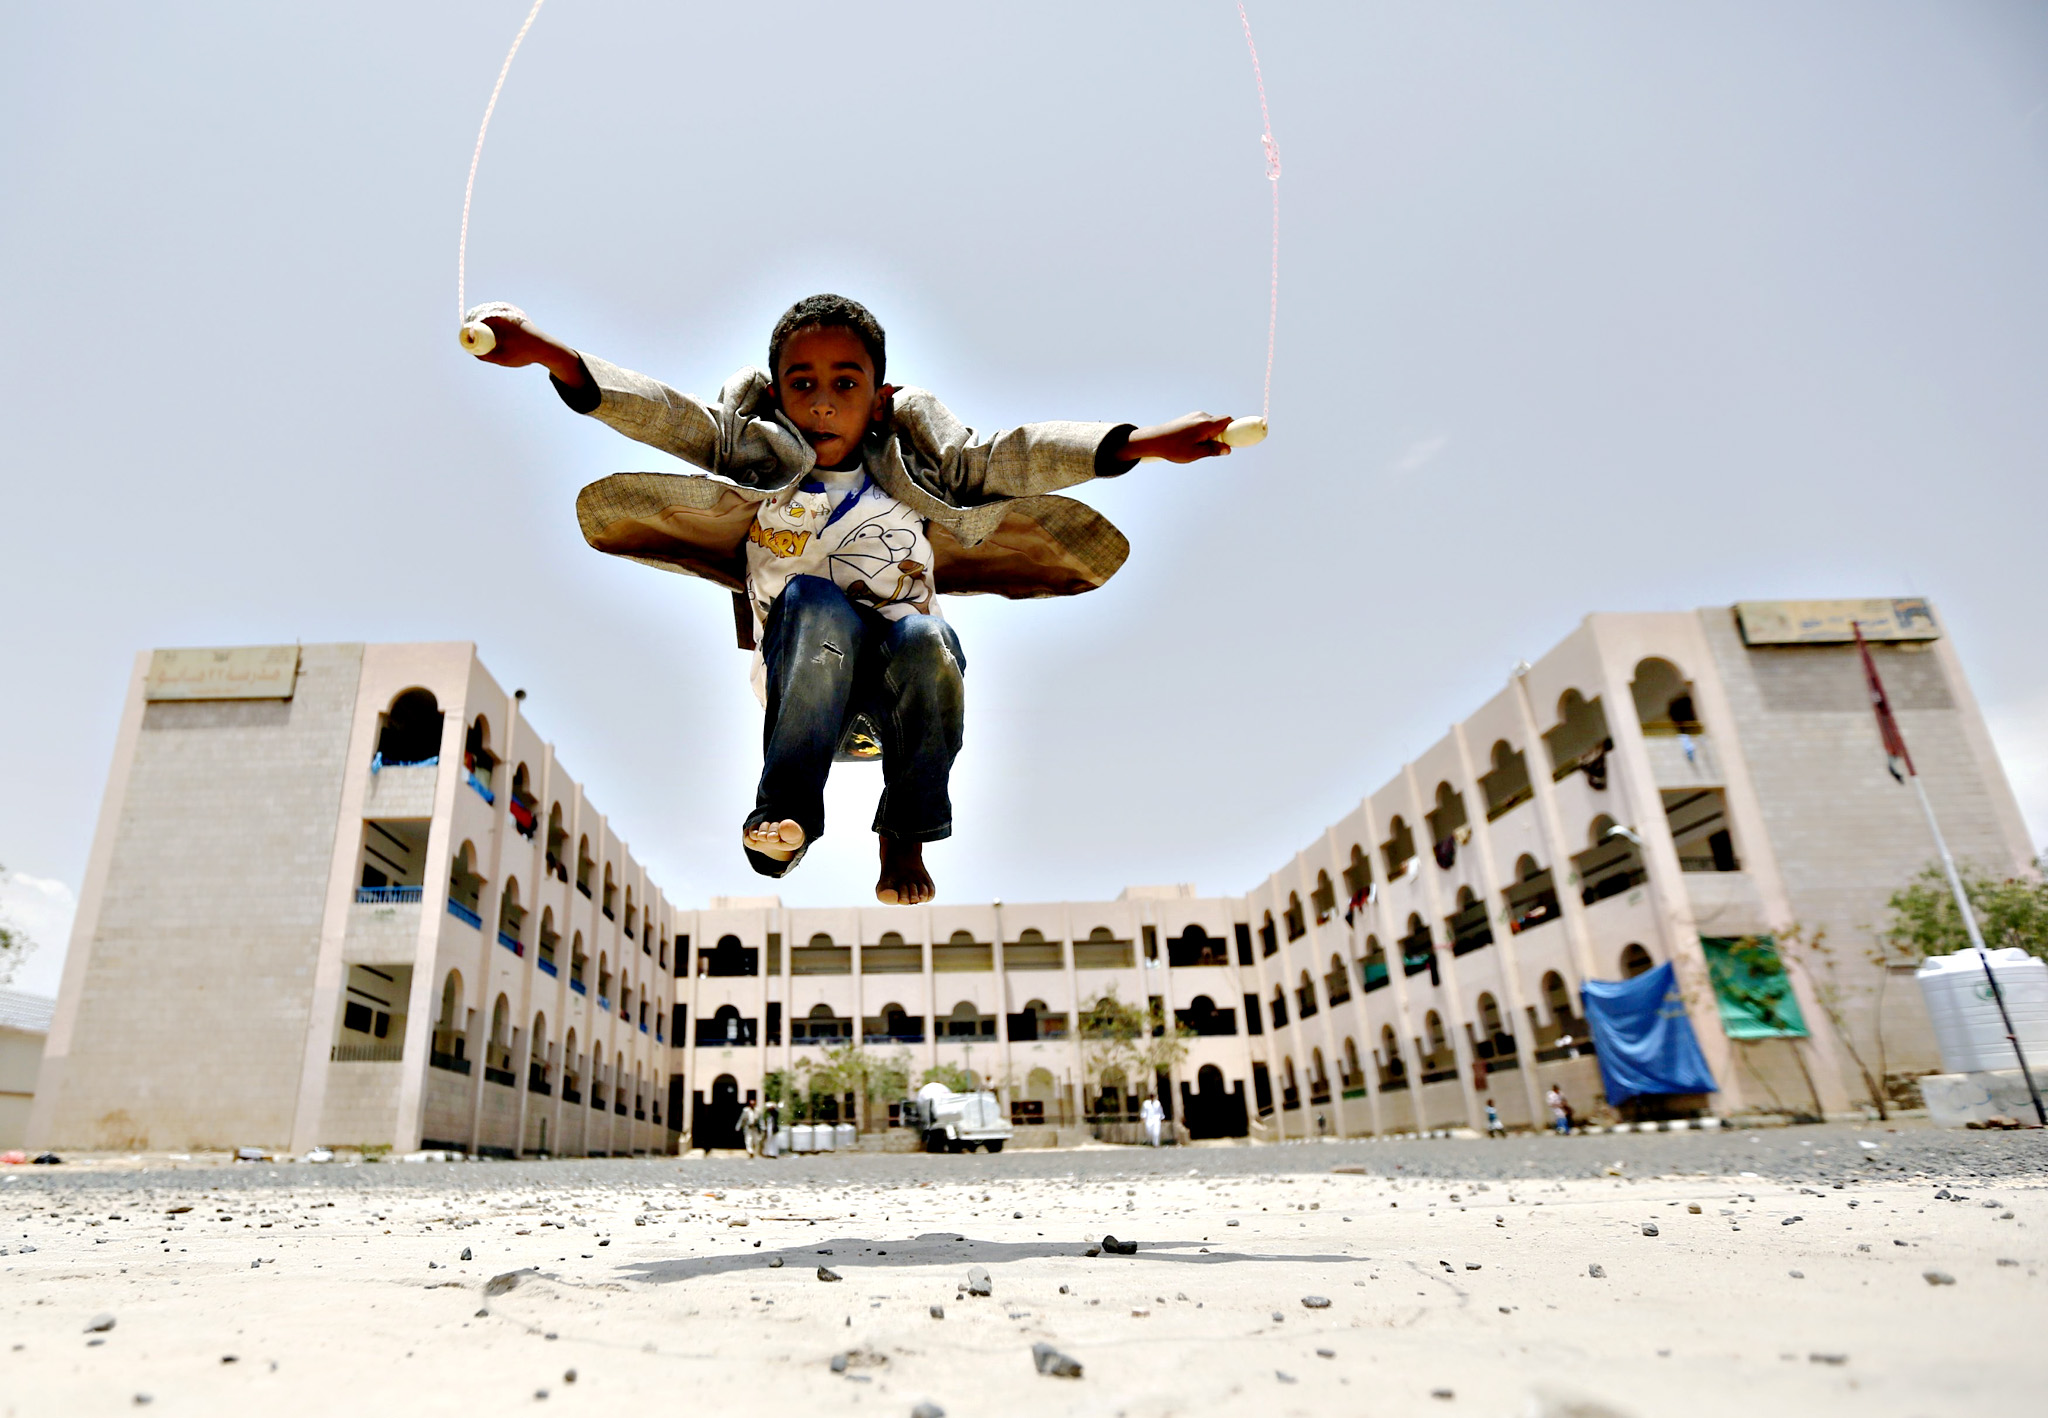 A boy skips at a school in Yemen's capital Sanaa sheltering people after the conflict forced them to flee their areas from the Houthi-controled northern province of Saada August 4, 2015. A Saudi-led Arab alliance launched a military campaign on March 26 to end Houthi control over much of Yemen and to return President Abd-Rabbu Mansour Hadi from exile